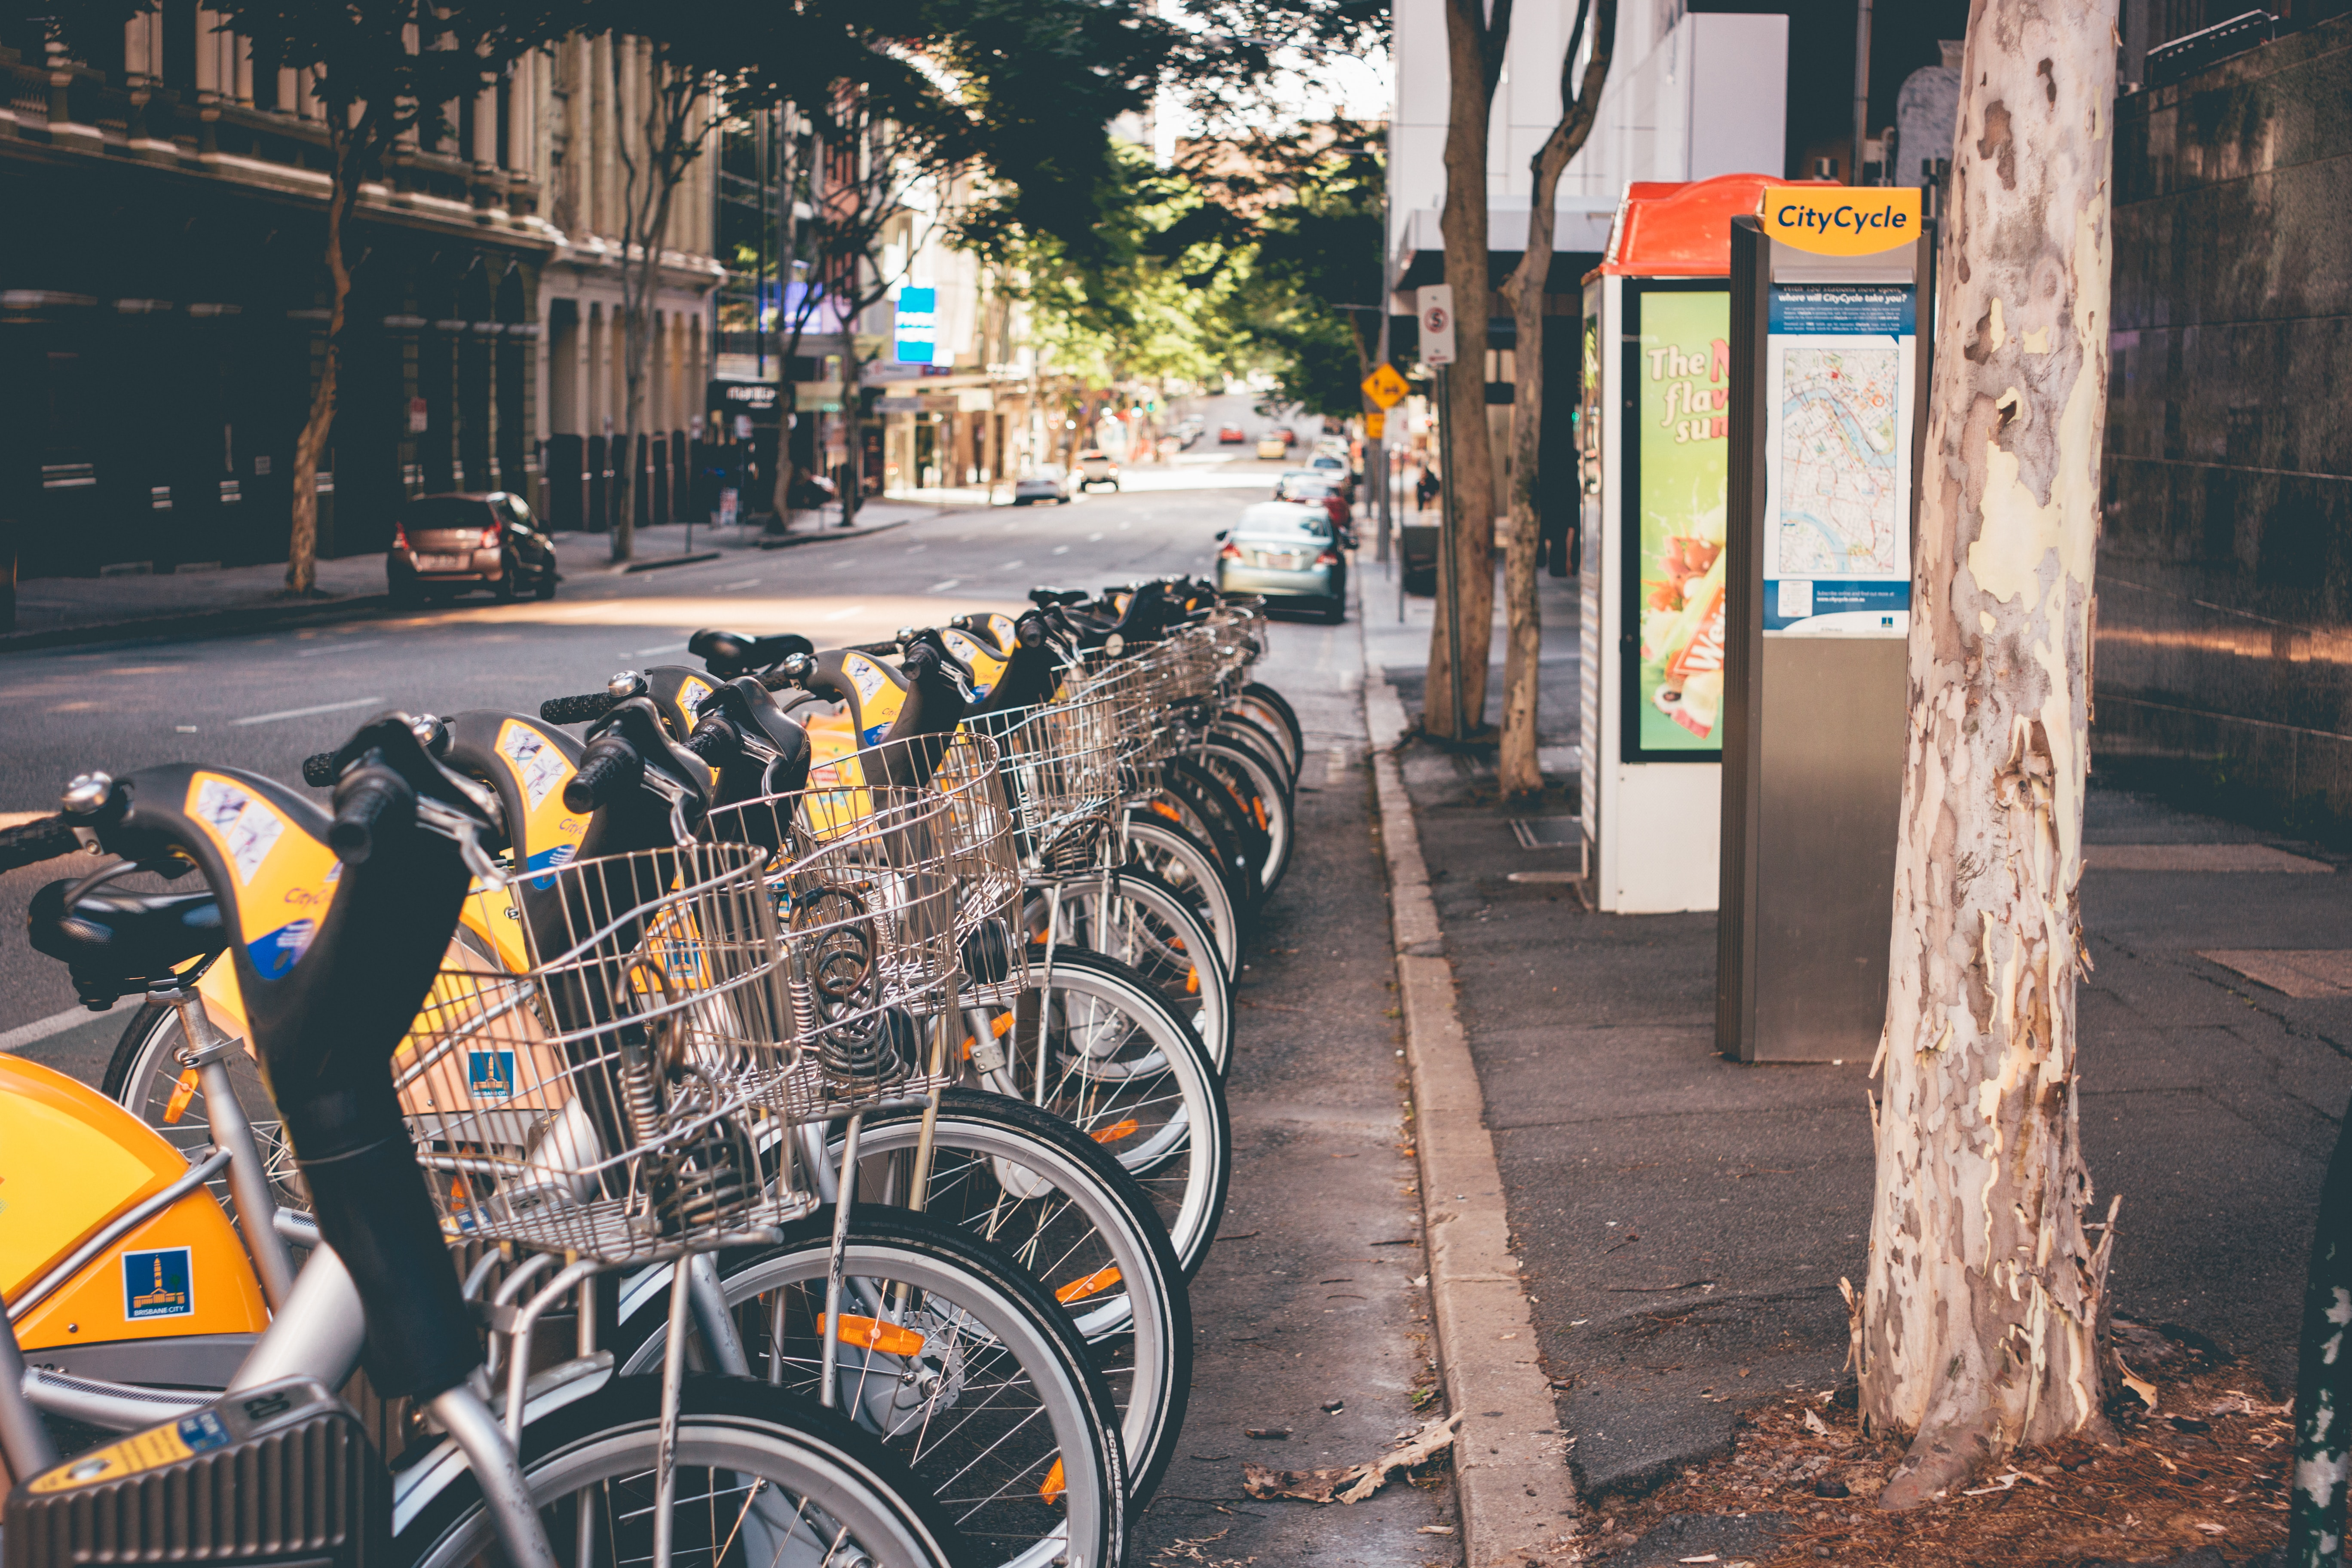 bicycles parked on street in a row